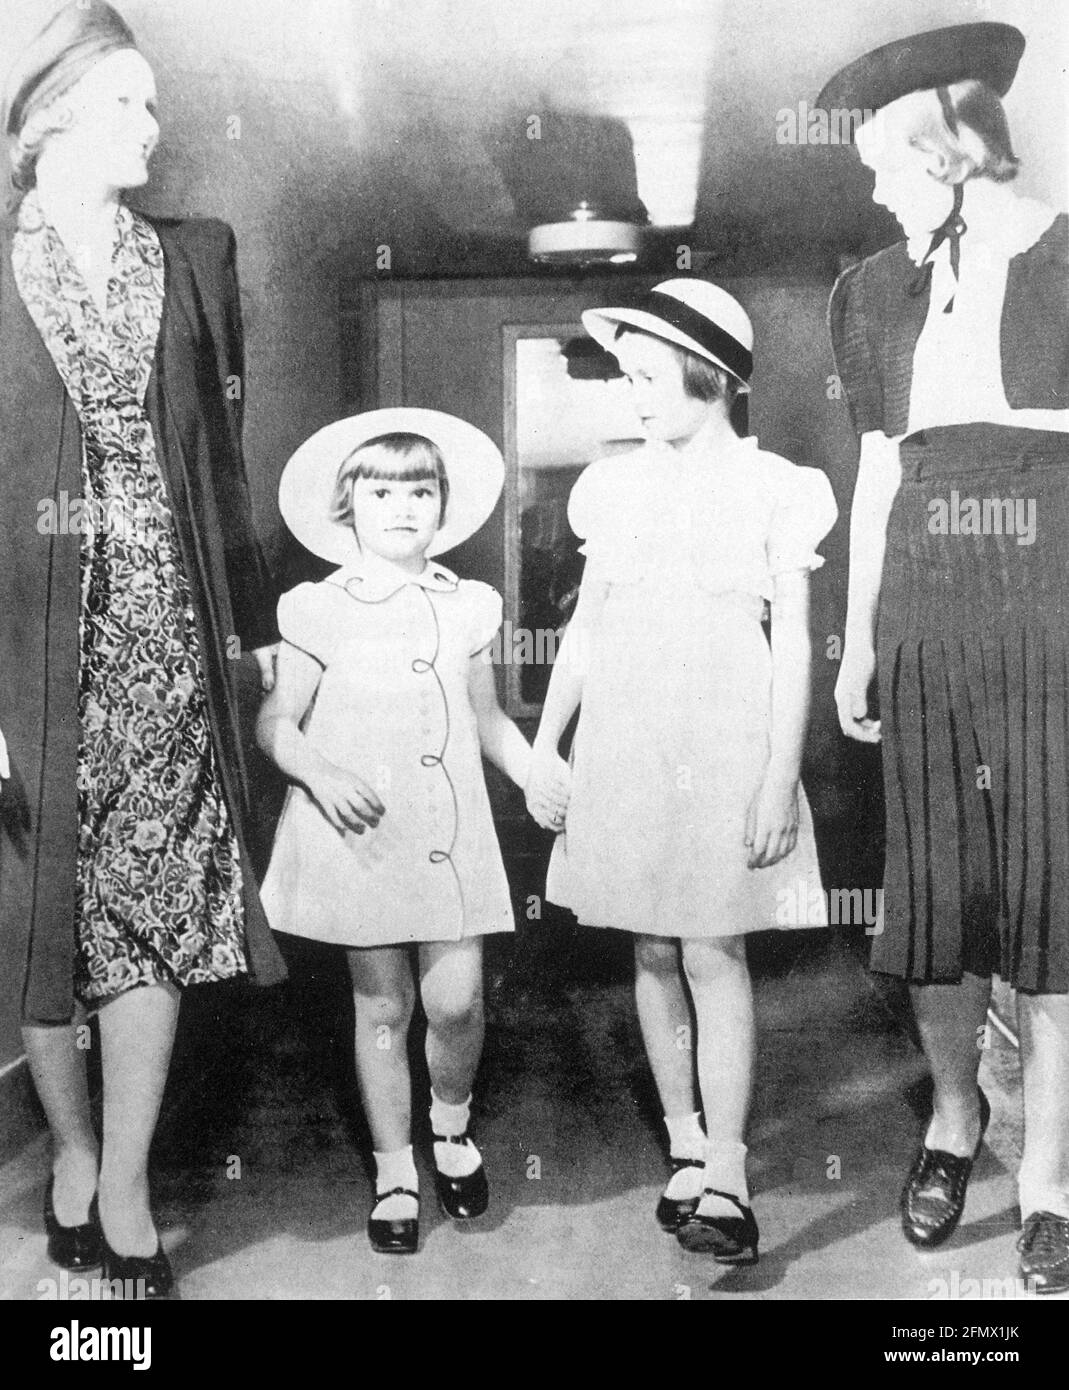 Kelly, Grace, 12.11.1929 -14.9.1982, American actress, with her sisters Lizanne, (* 1933), Peggy, ADDITIONAL-RIGHTS-CLEARANCE-INFO-NOT-AVAILABLE Stock Photo